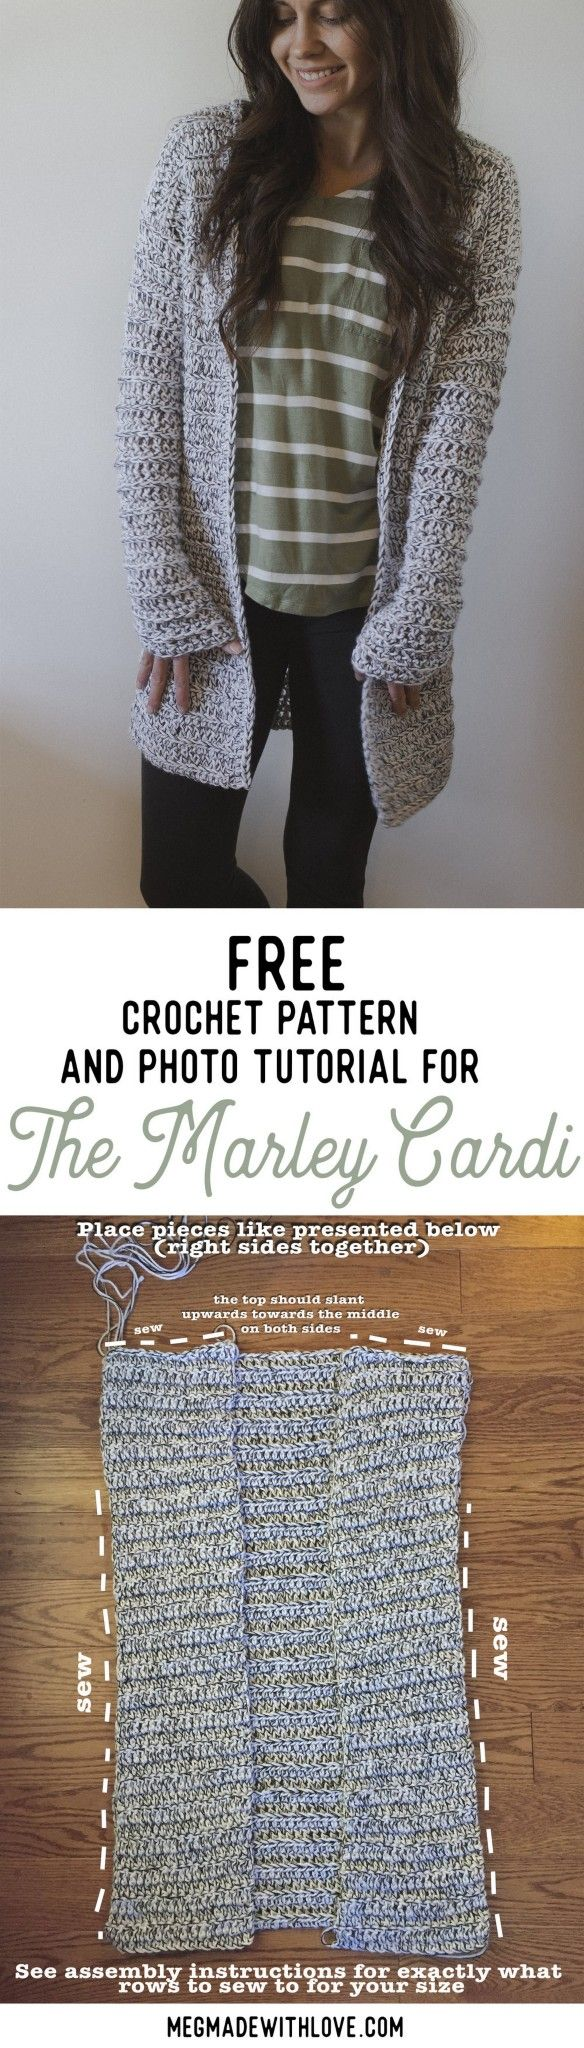 Free crochet pattern for long cardigan. Pinning this now for inspiration later!